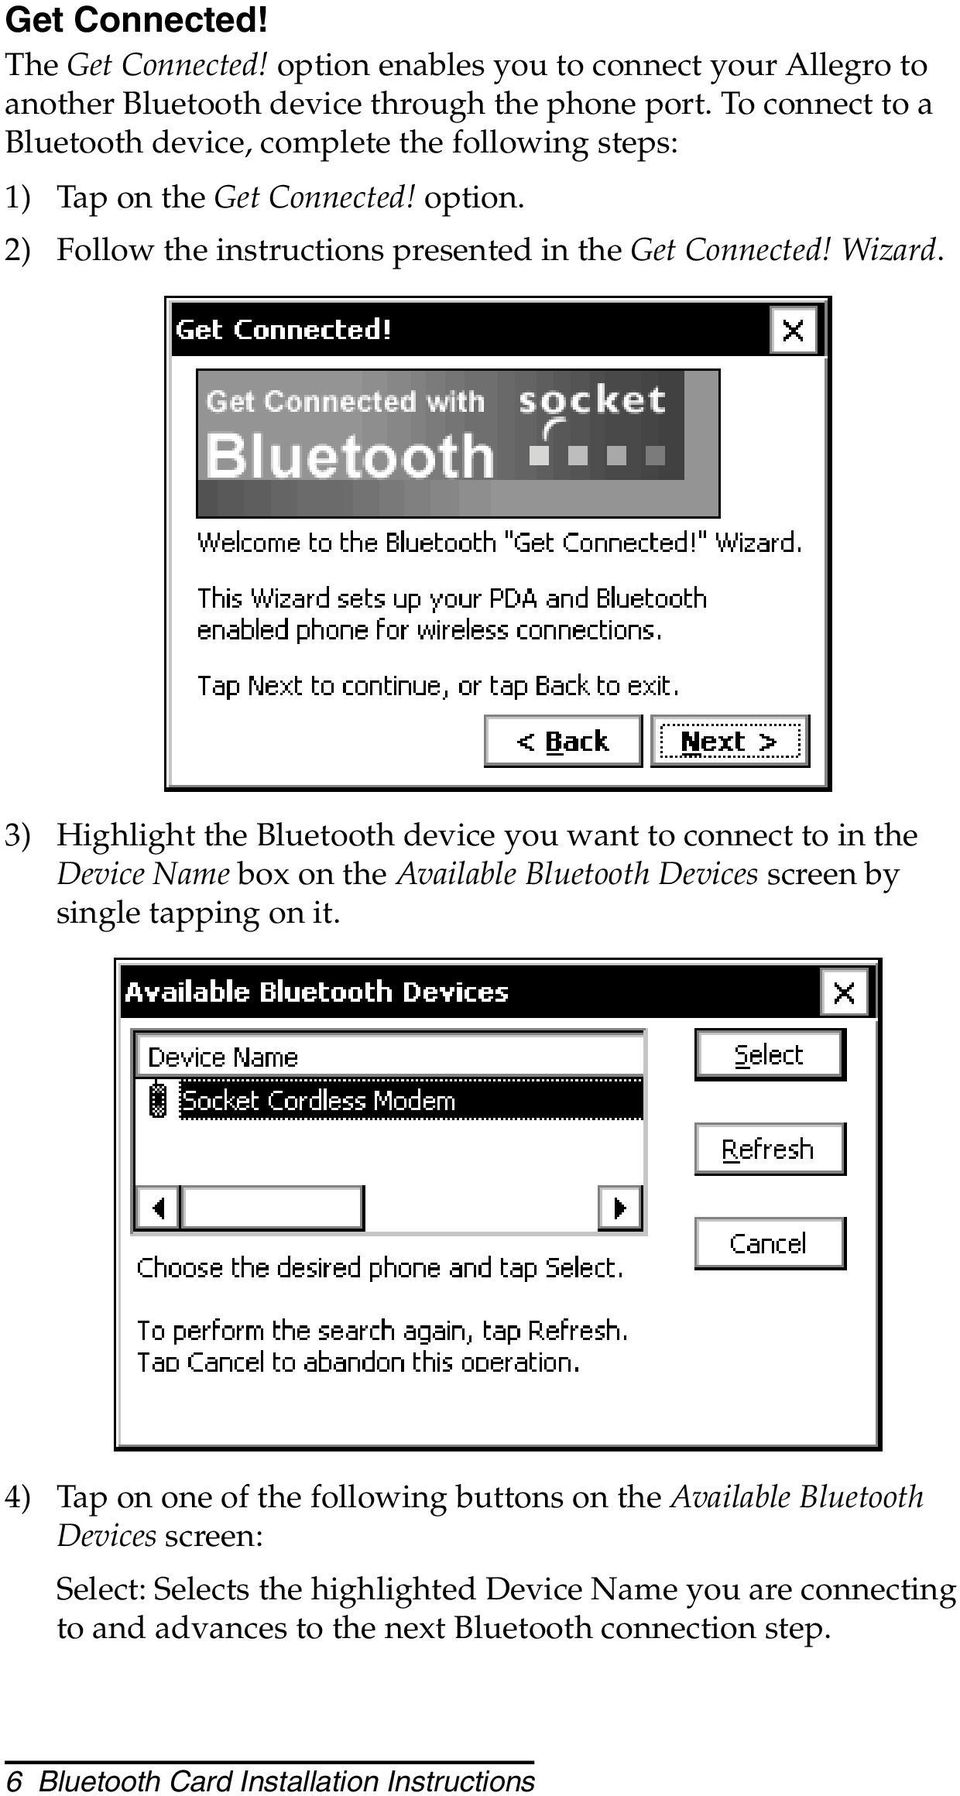 3) Highlight the Bluetooth device you want to connect to in the Device Name box on the Available Bluetooth Devices screen by single tapping on it.